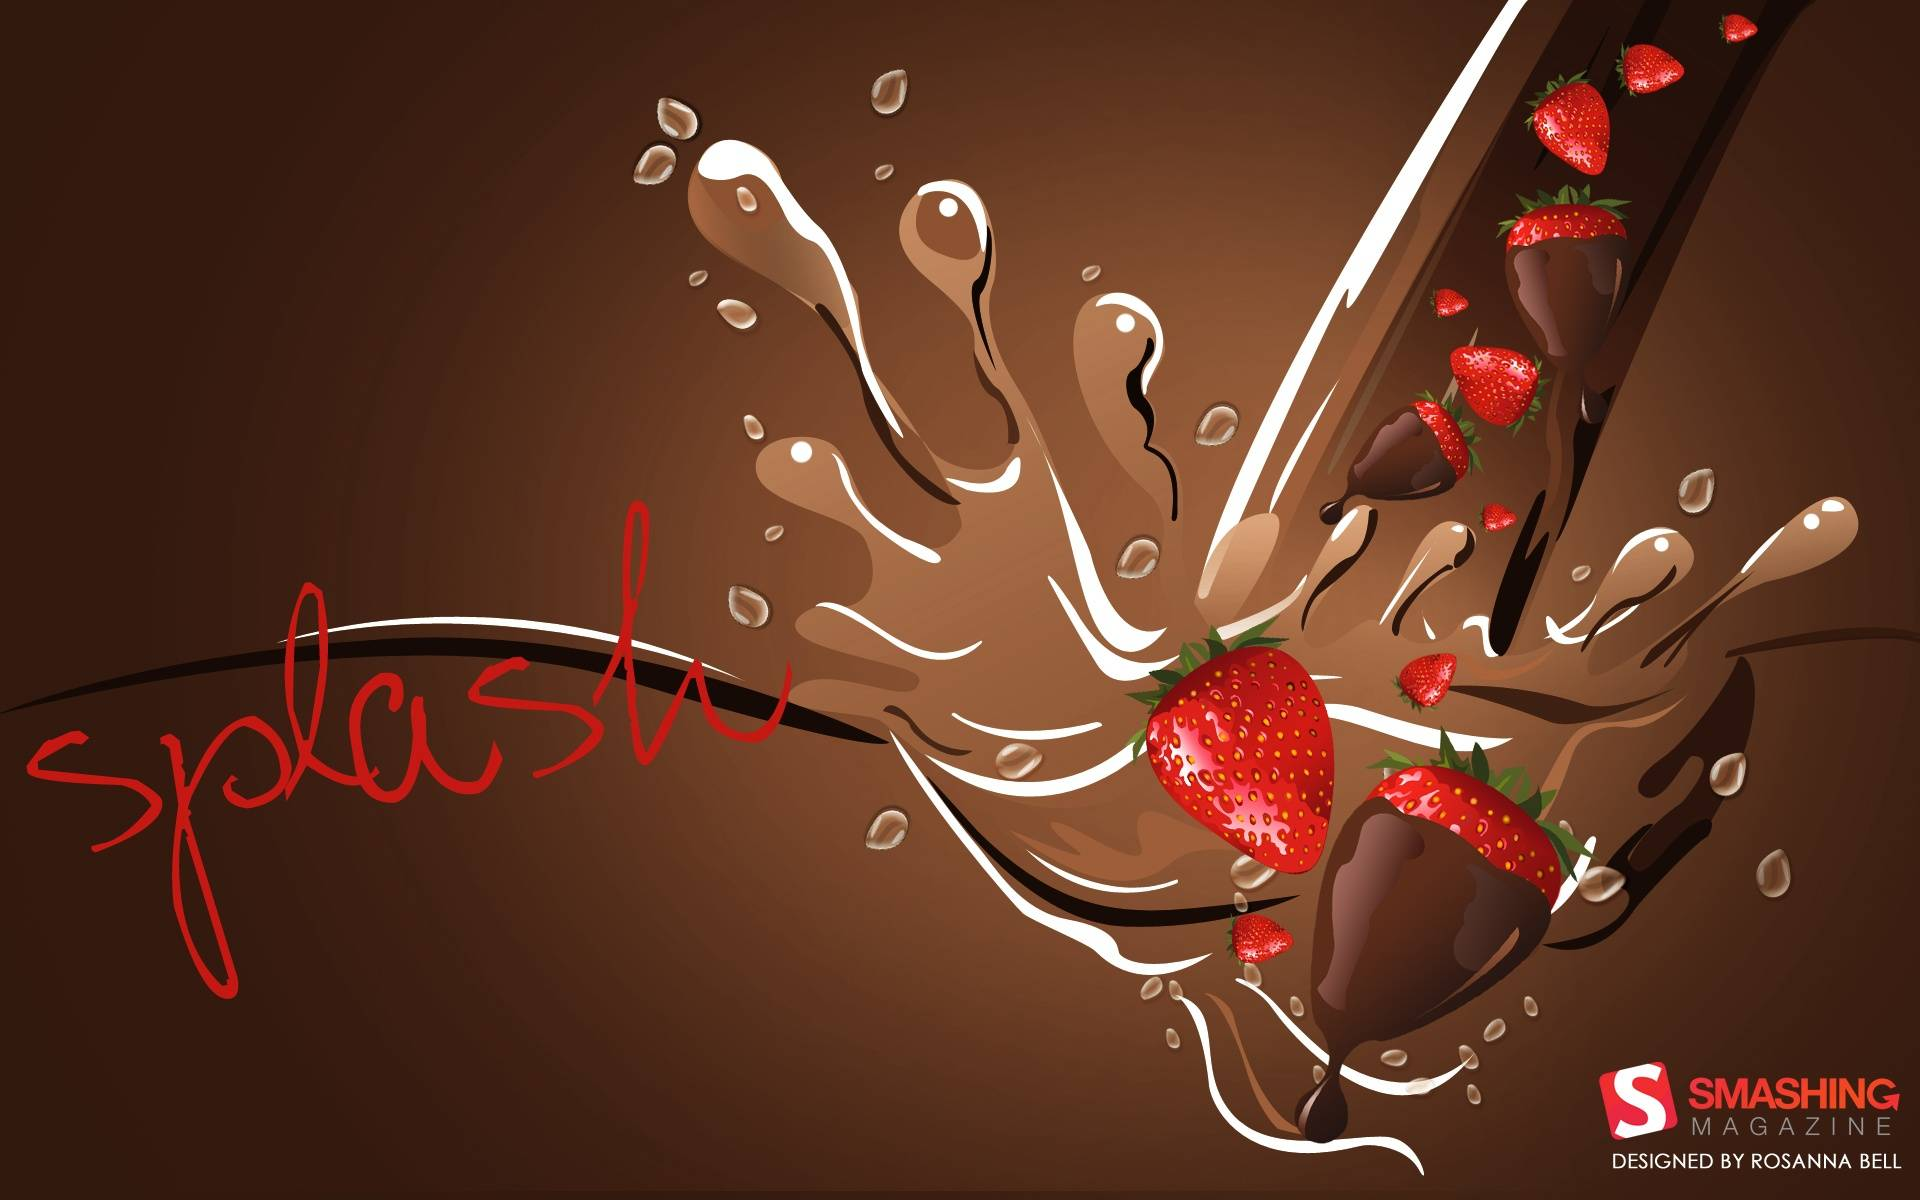 Chocolate wallpaper 1920x1200 Wallpaper of Chocolate and strawberries 1920x1200